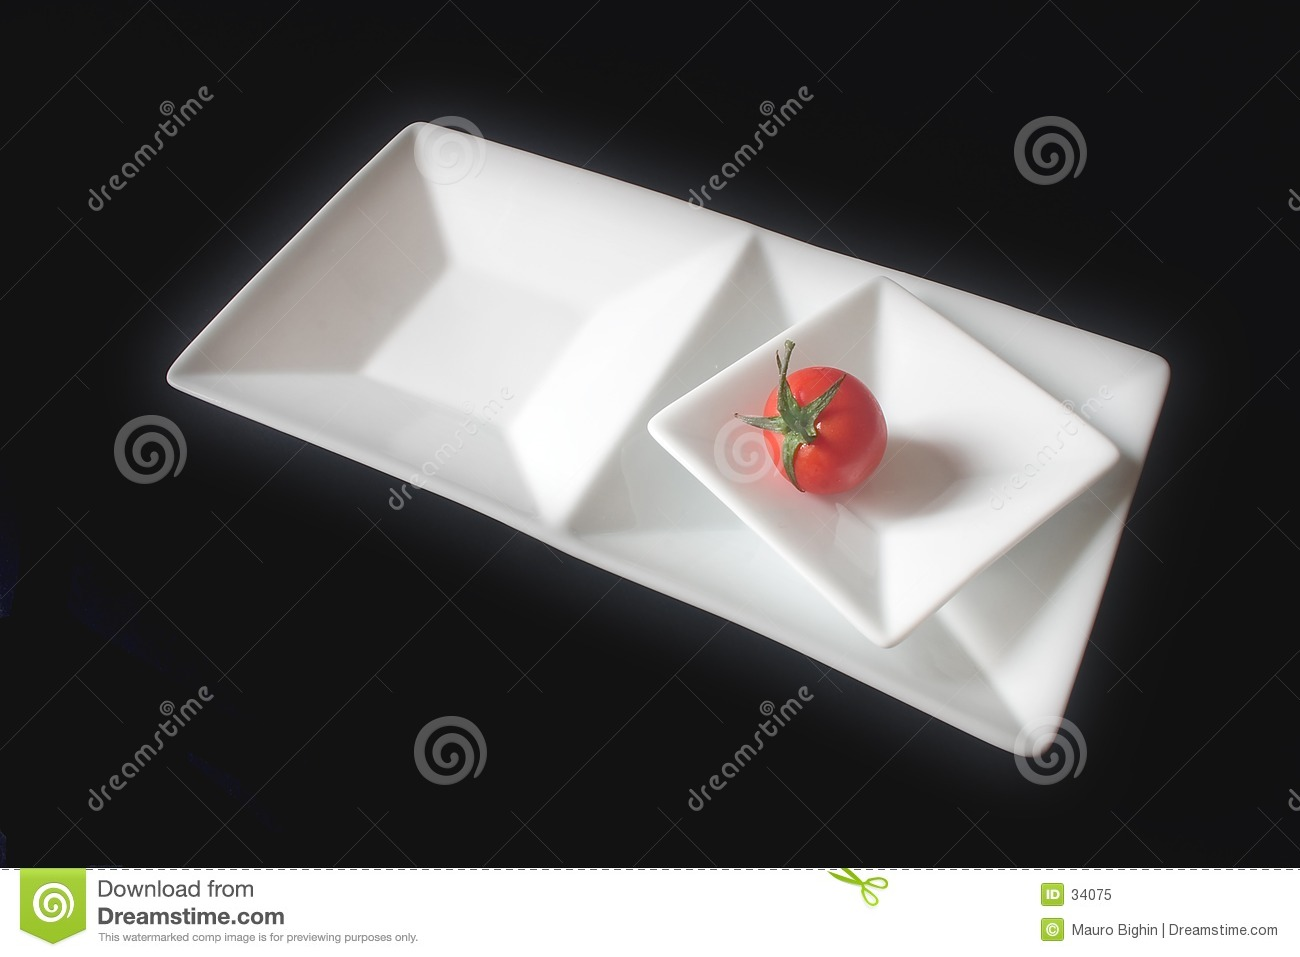 Single tomato on squared dishes